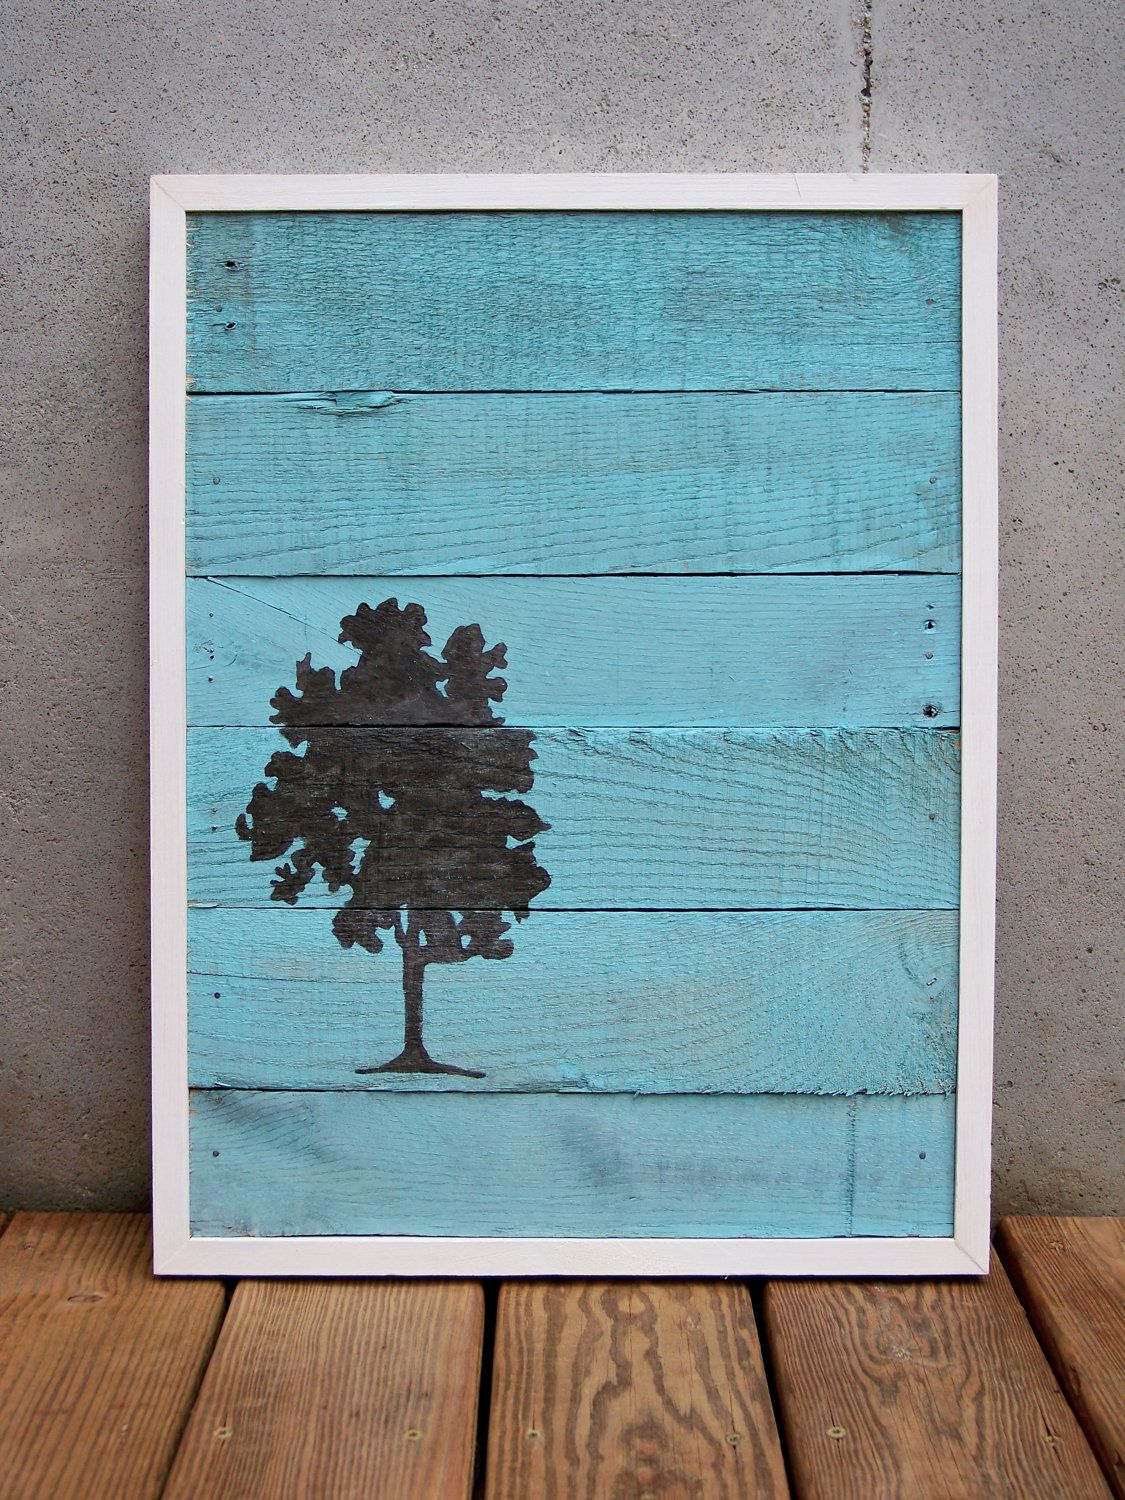 Reclaimed Wood Brown and Turquoise Tree Painting - Reclaimed Wood Brown And Turquoise Tree Painting Turquoise